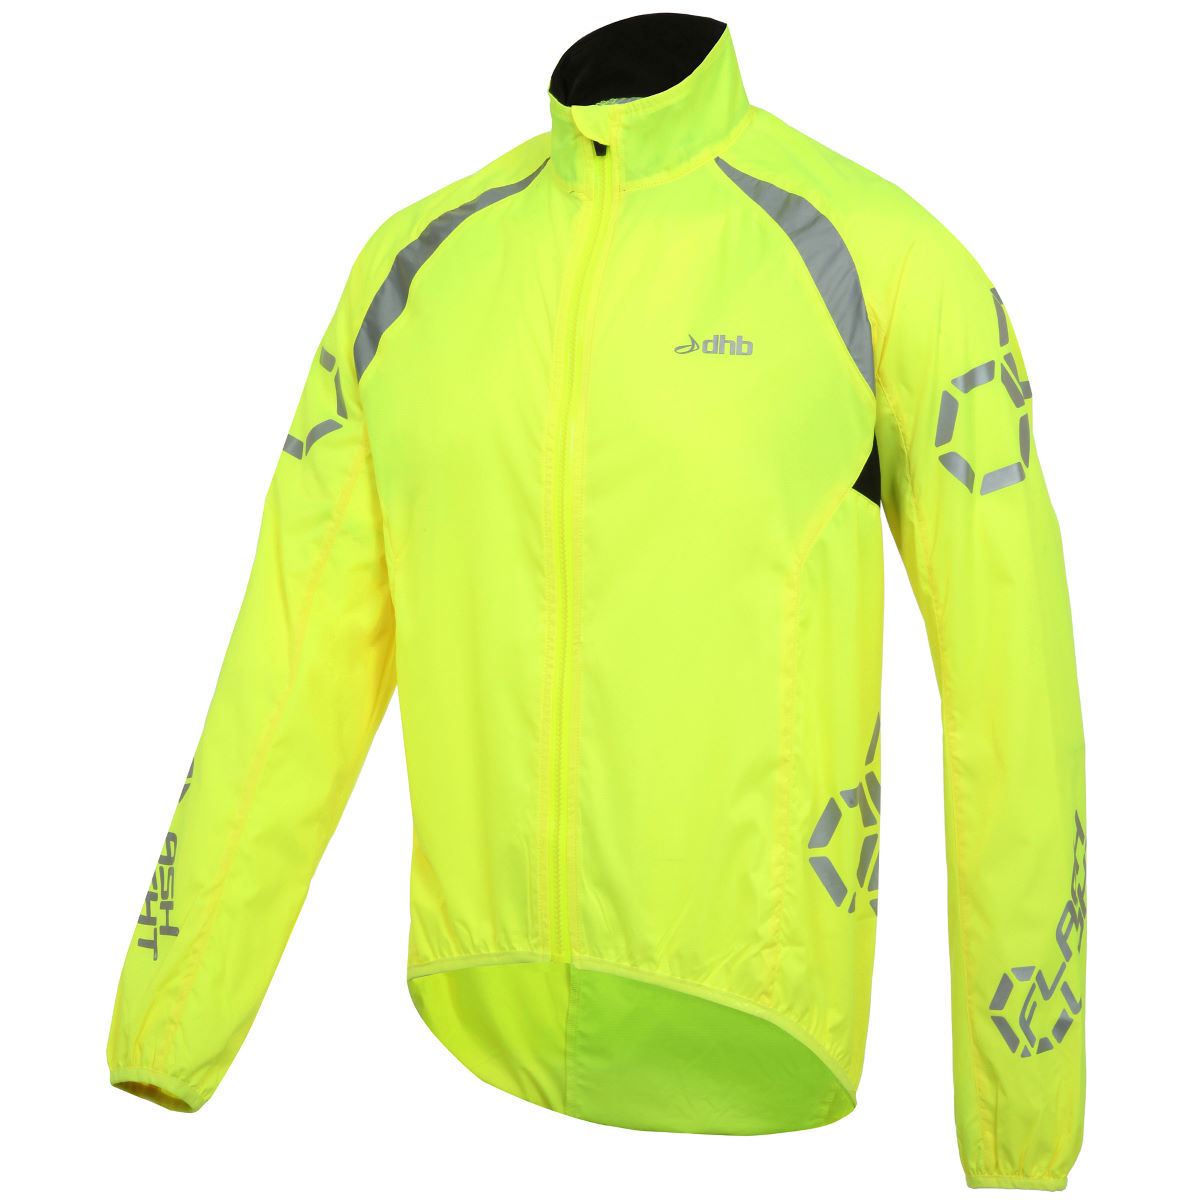 Veste dhb Flashlight (coupe-vent) - L Fluro Yellow Coupe-vents vélo